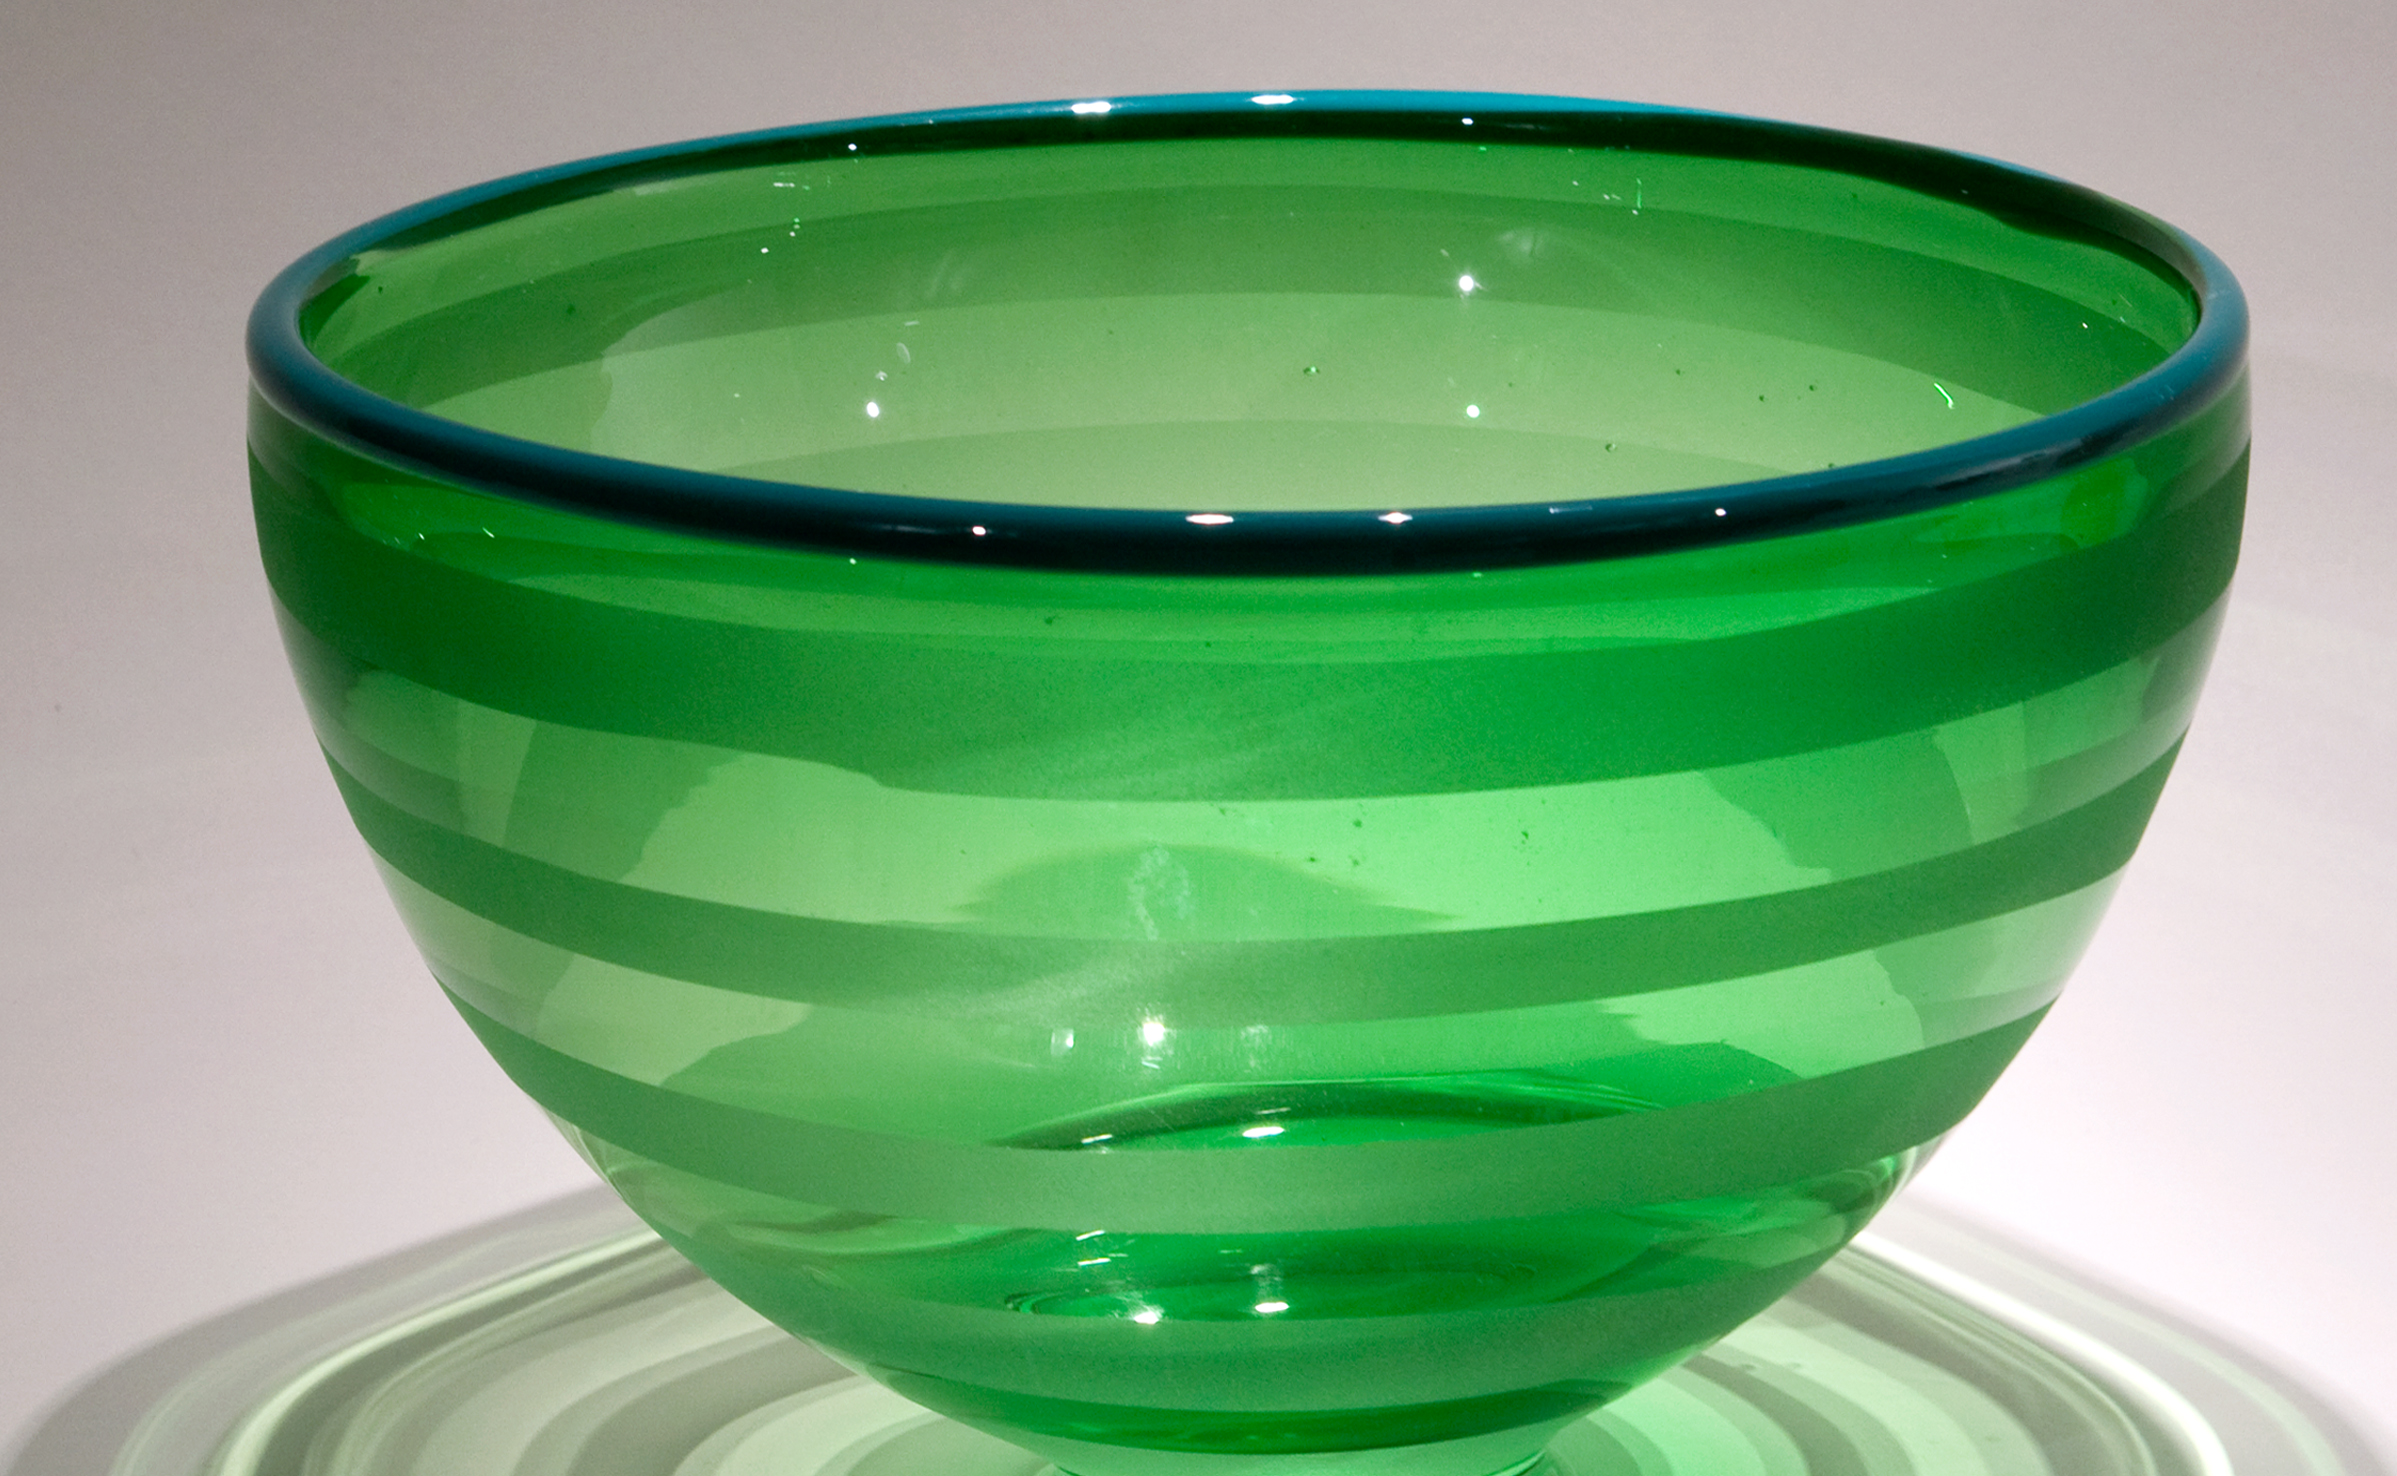 an image of a glass, green bowl from the Illinois State University Holiday Glass Sale